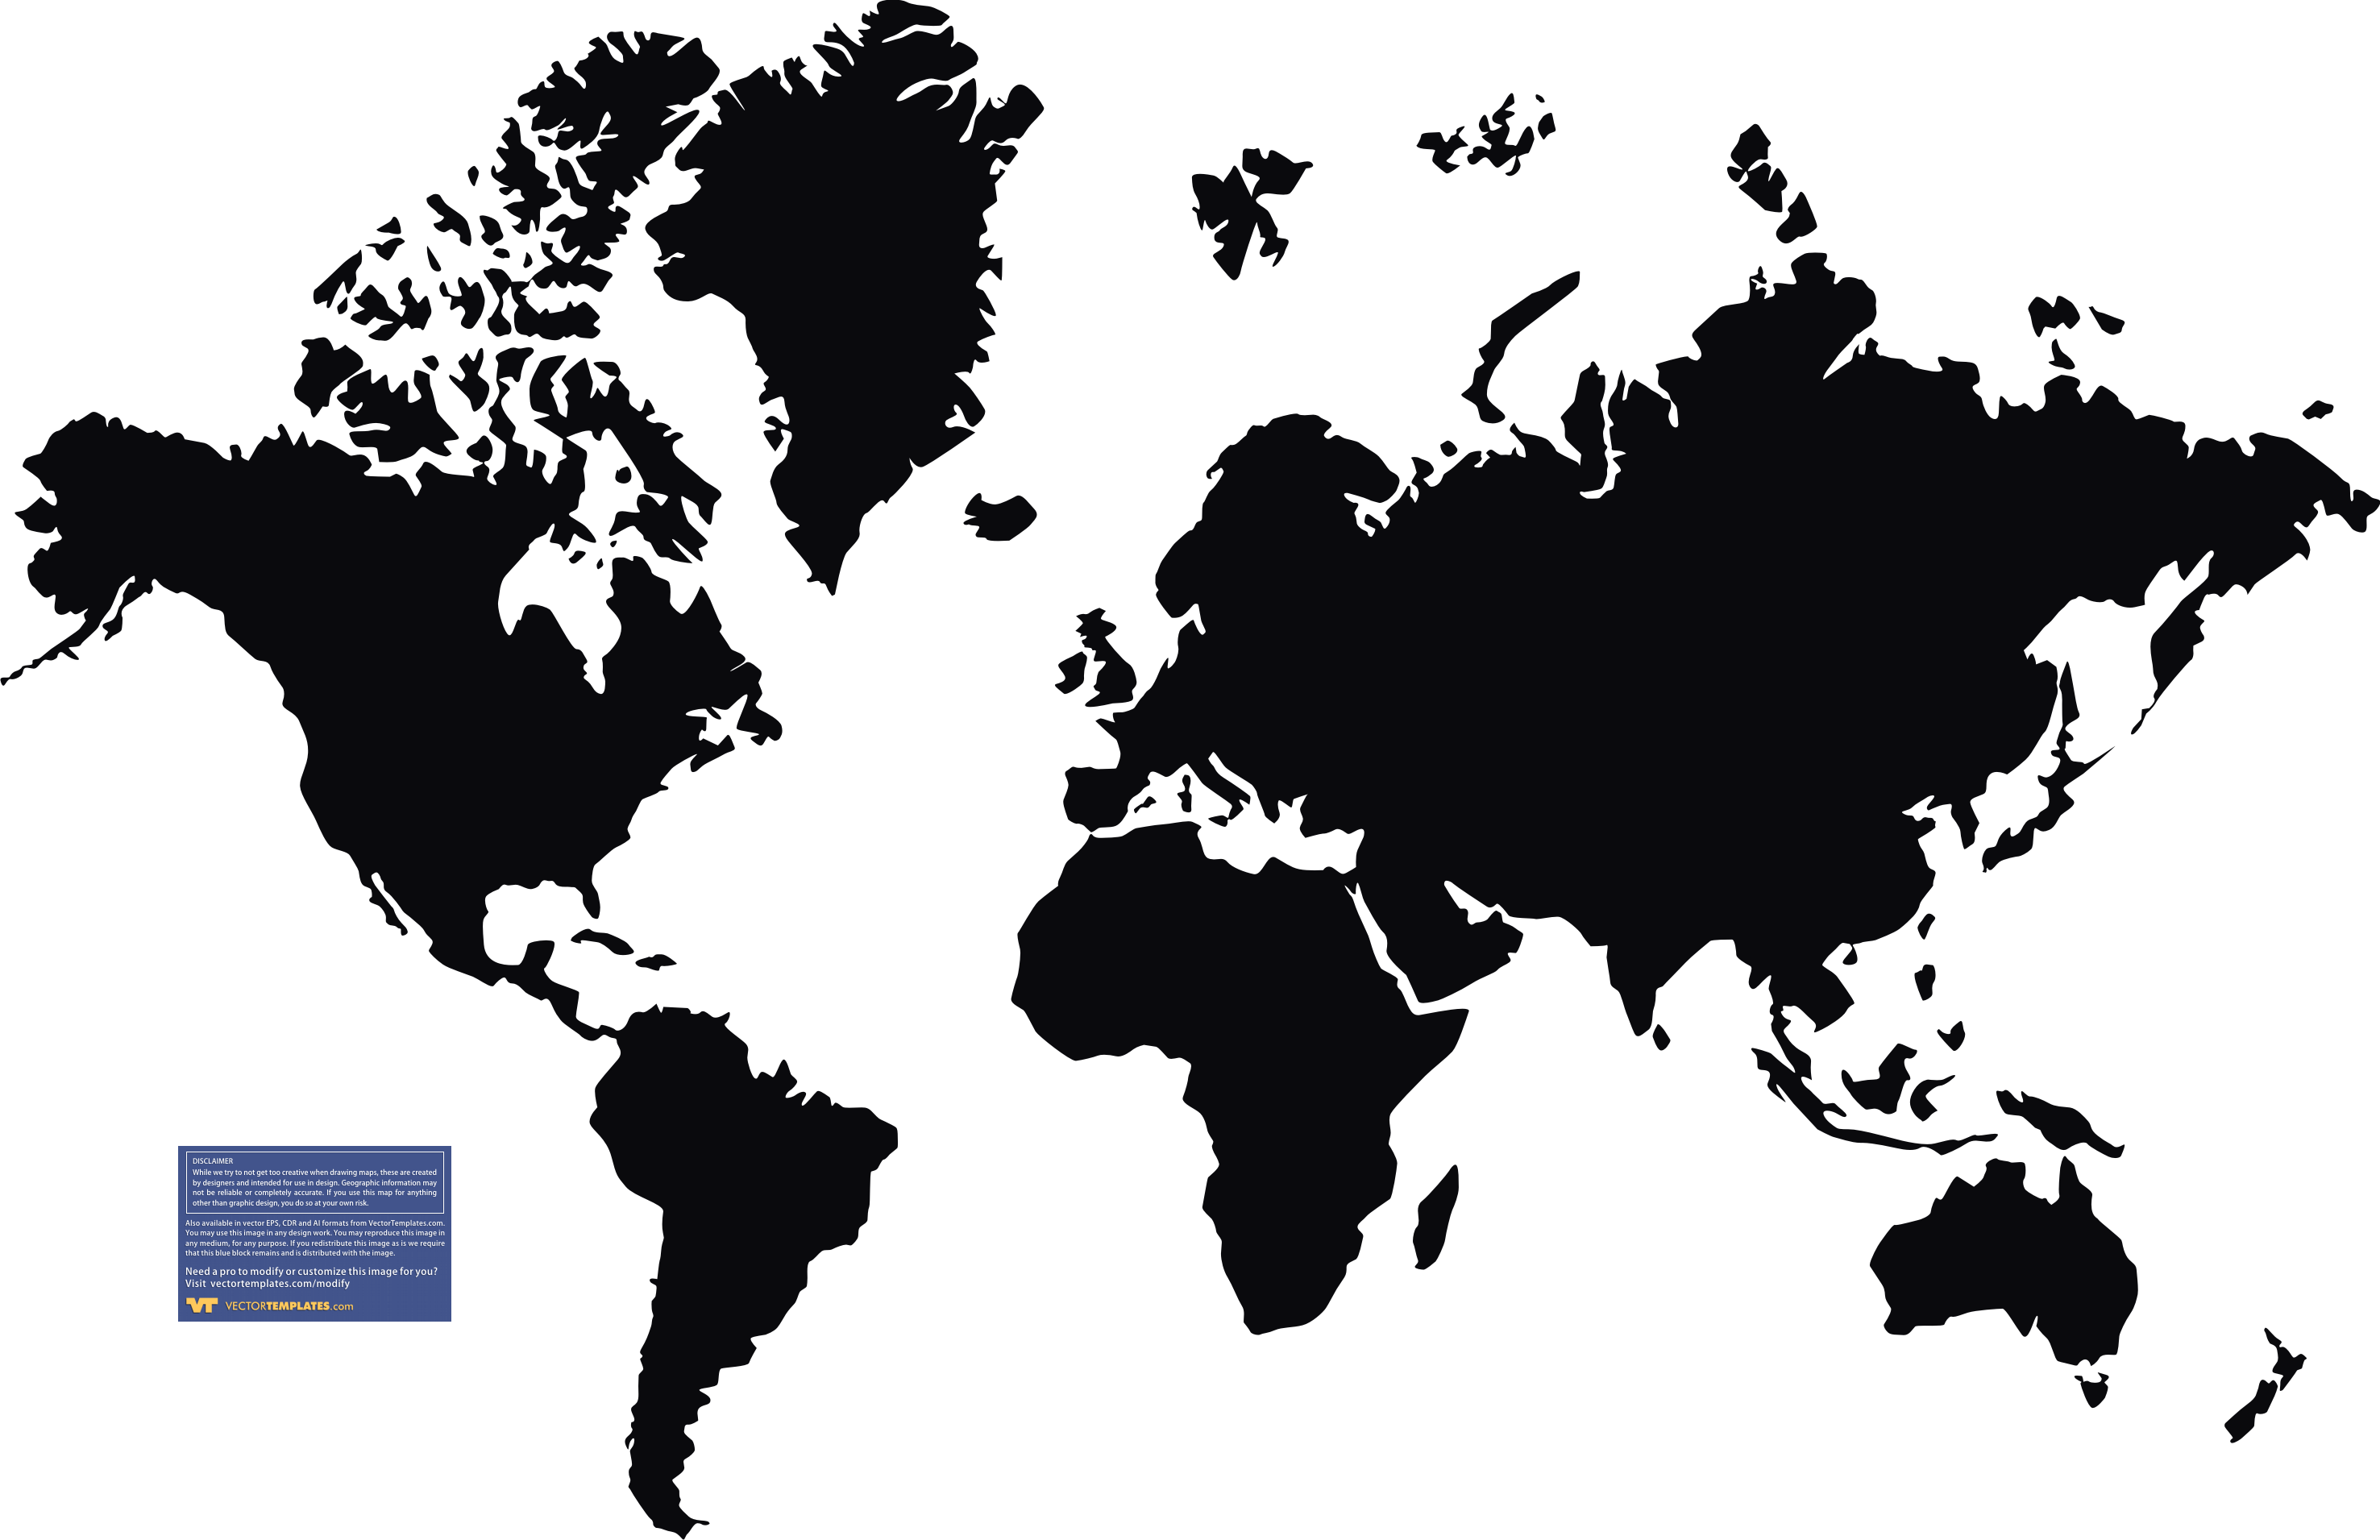 World Map Black And White With Continents Hd Images 3 HD Wallpapers.